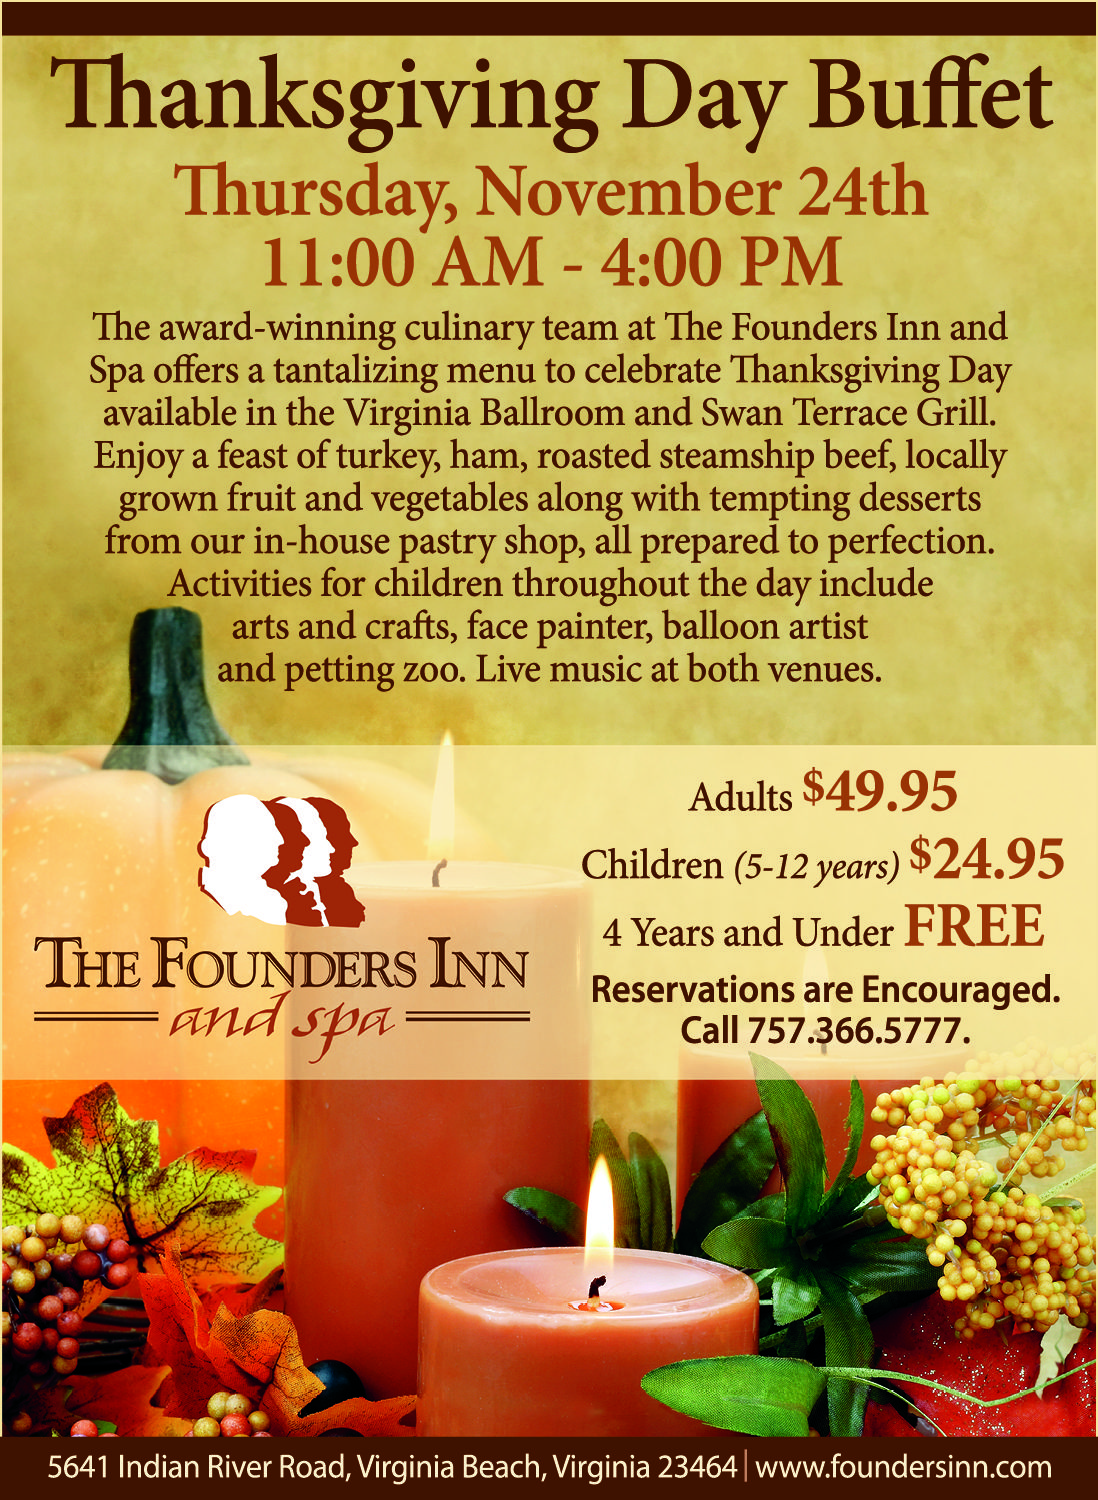 Thanksgiving Day Buffet At The Founders Inn And Spa